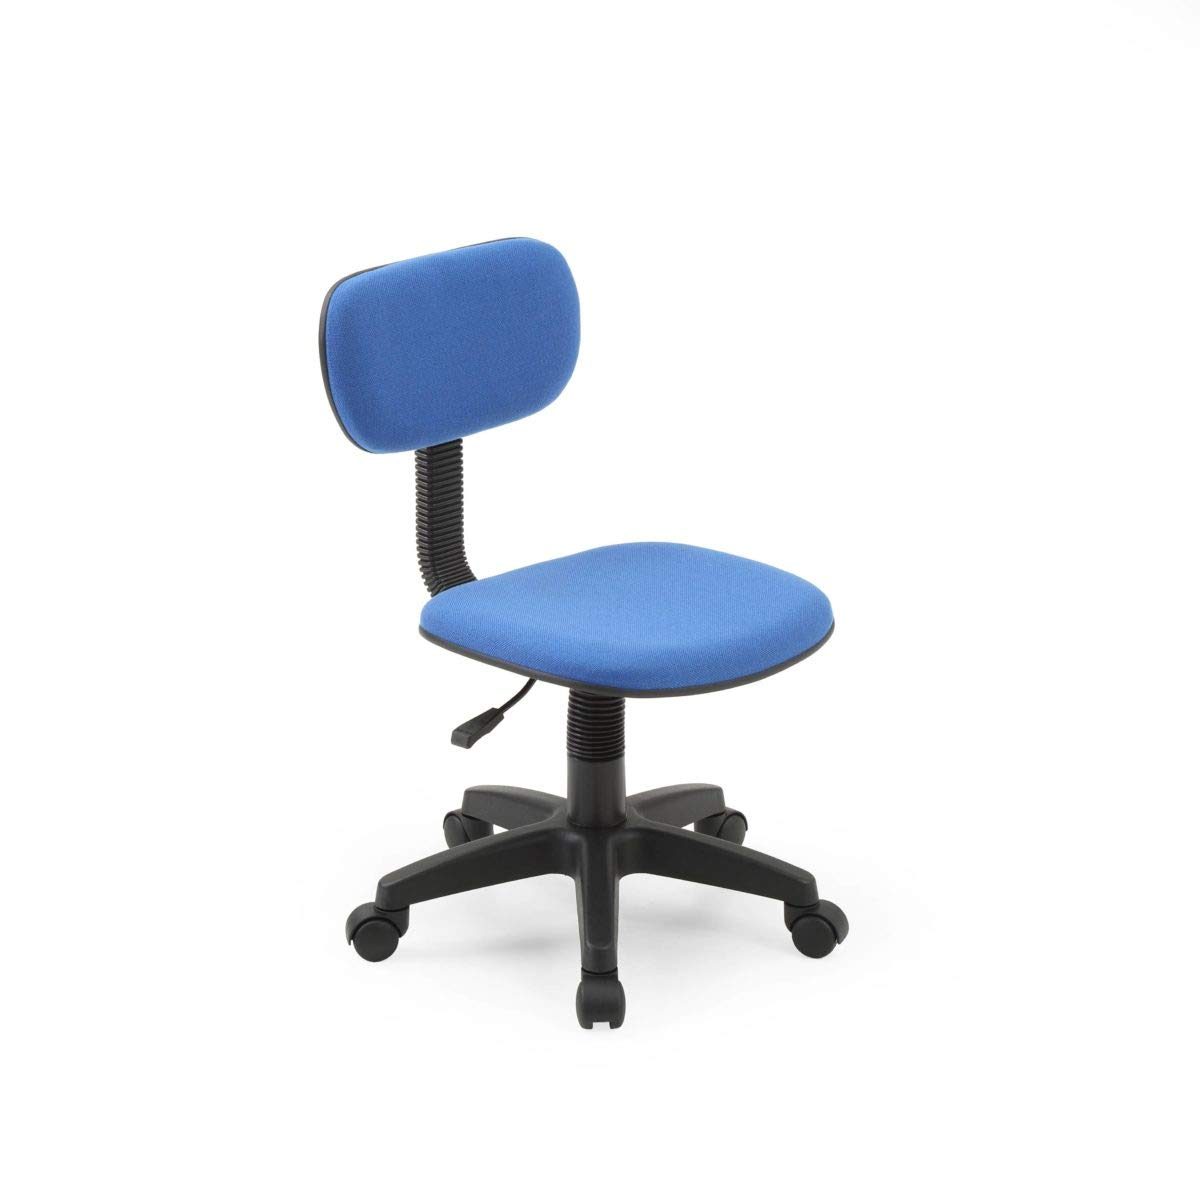 Hodedah Armless, Low-Back, Adjustable Height, Swiveling Task Chair with Padded Back and Seat in Blue, Not for adult use by HODEDAH IMPORT